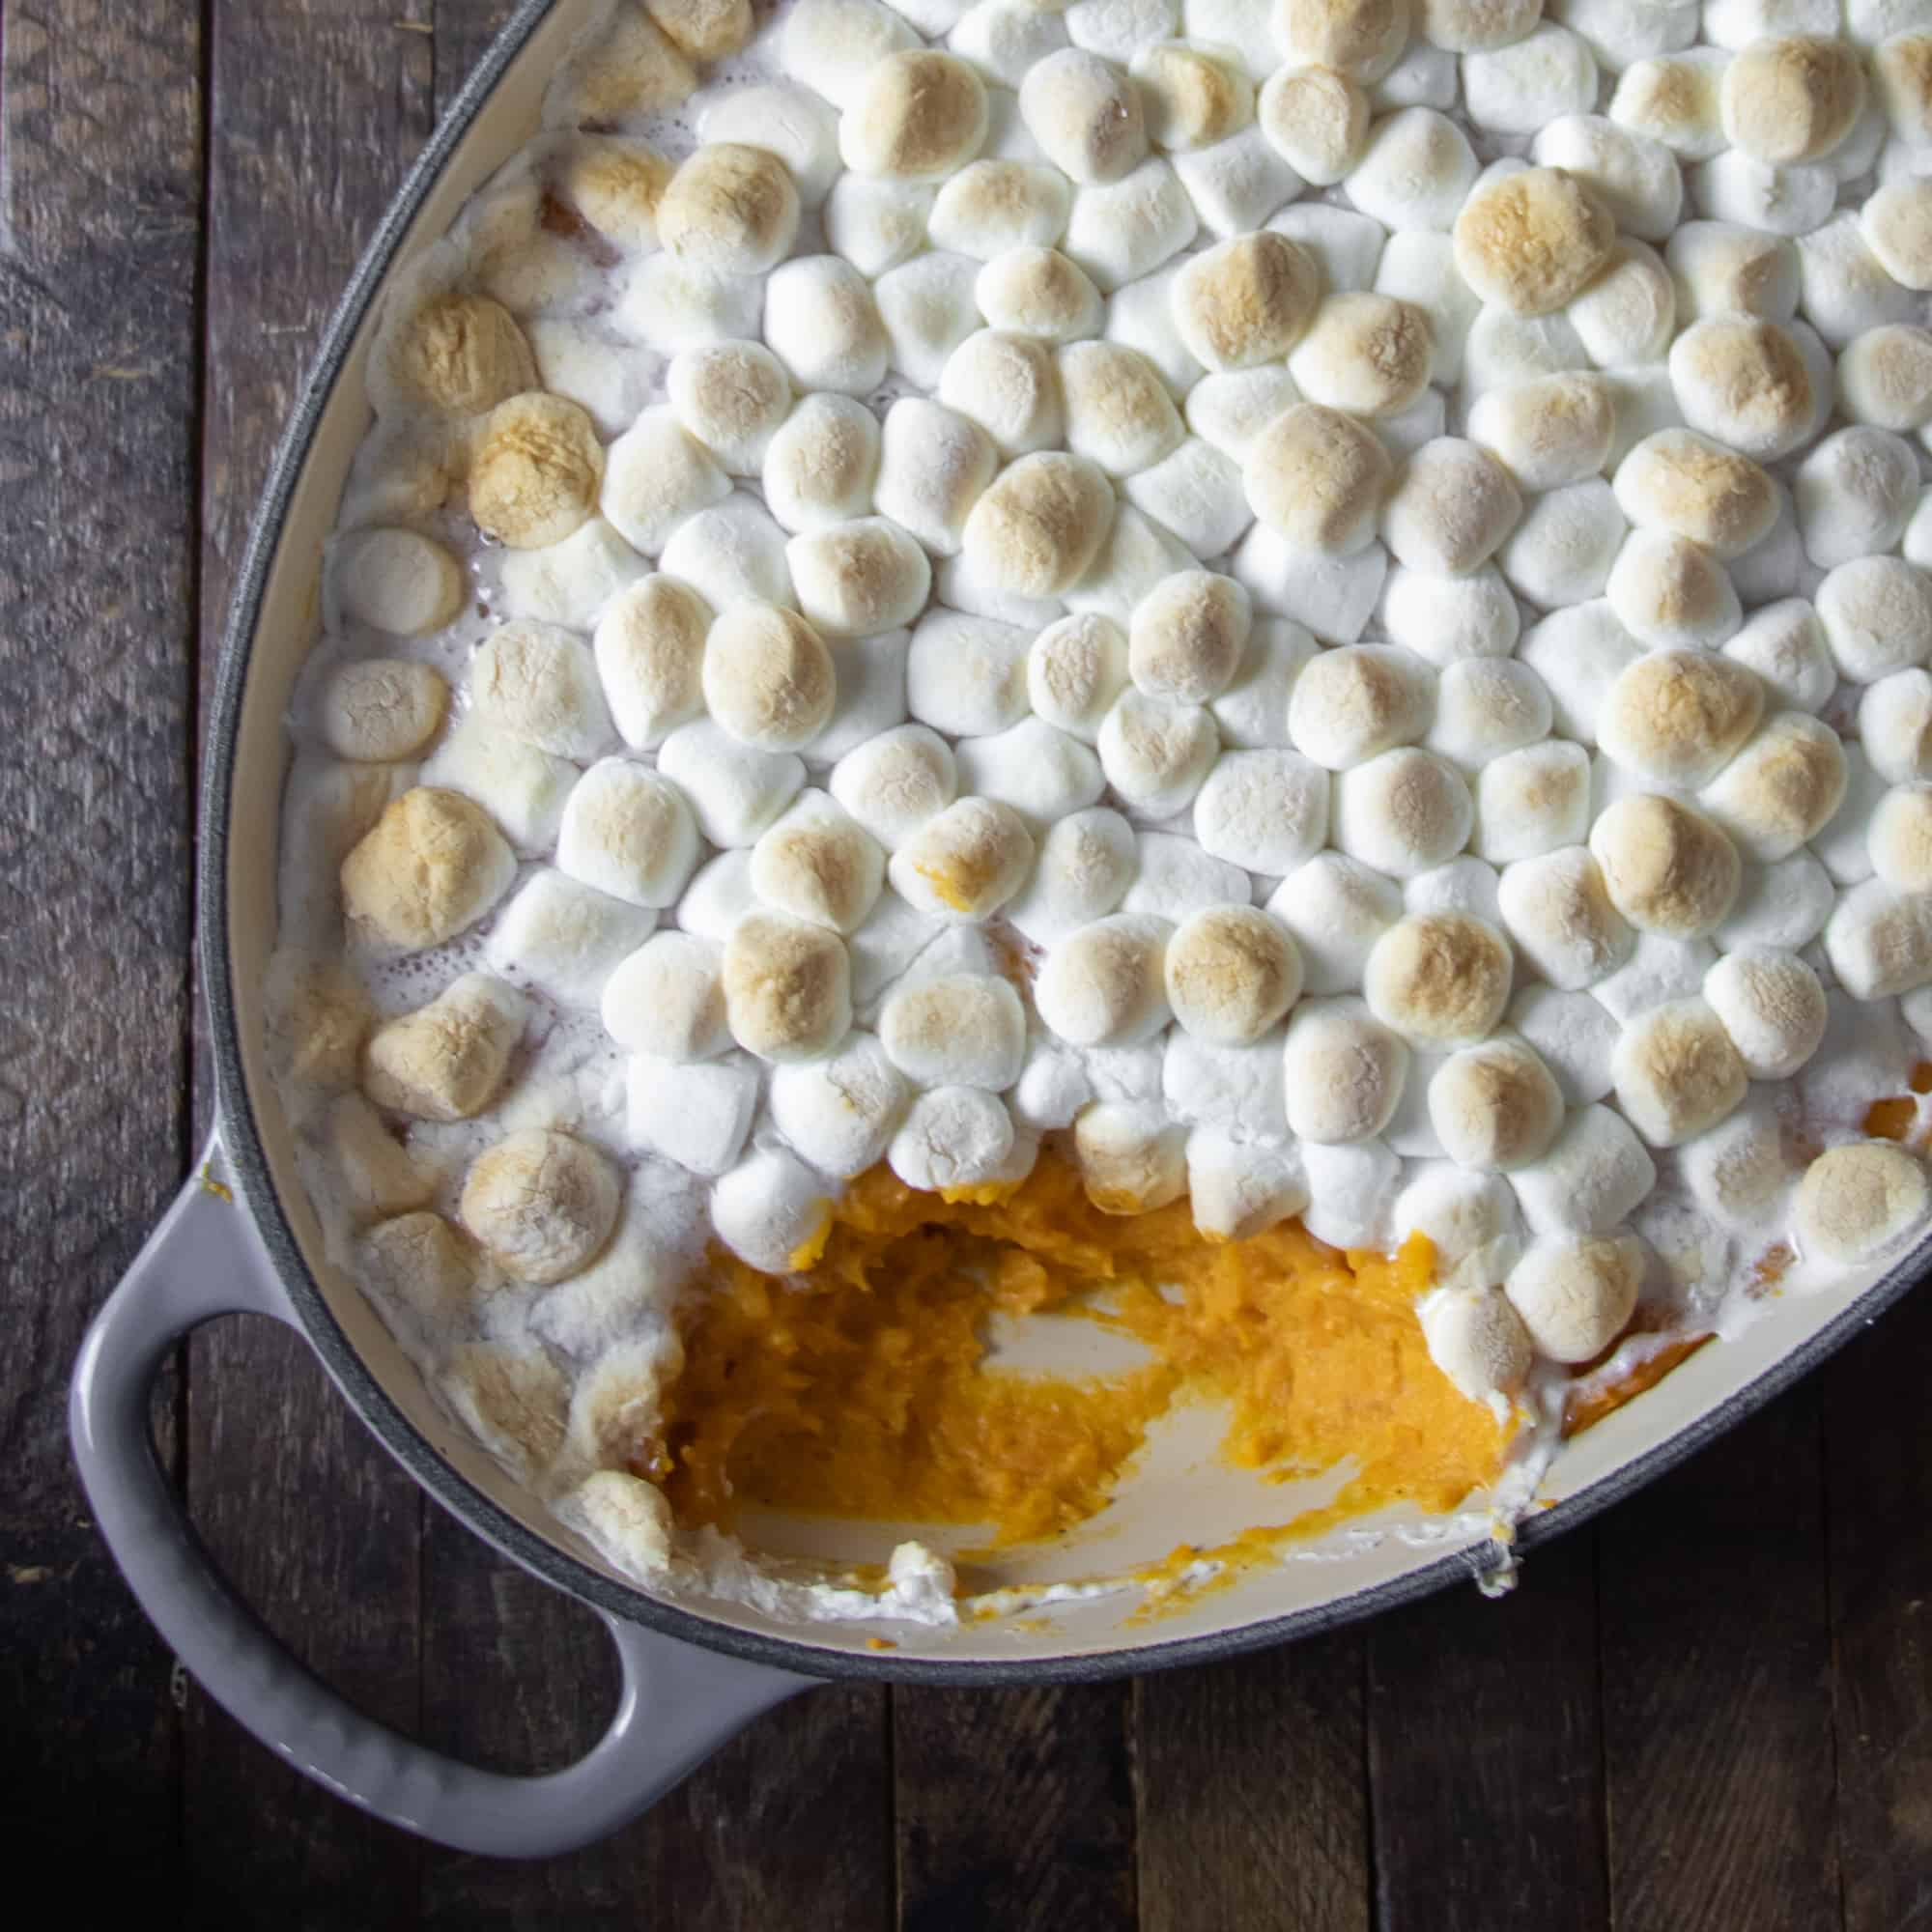 This sweet potato casserole is a classic Thanksgiving side dish. Creamy and buttery filling with toasted marshmallow topping.